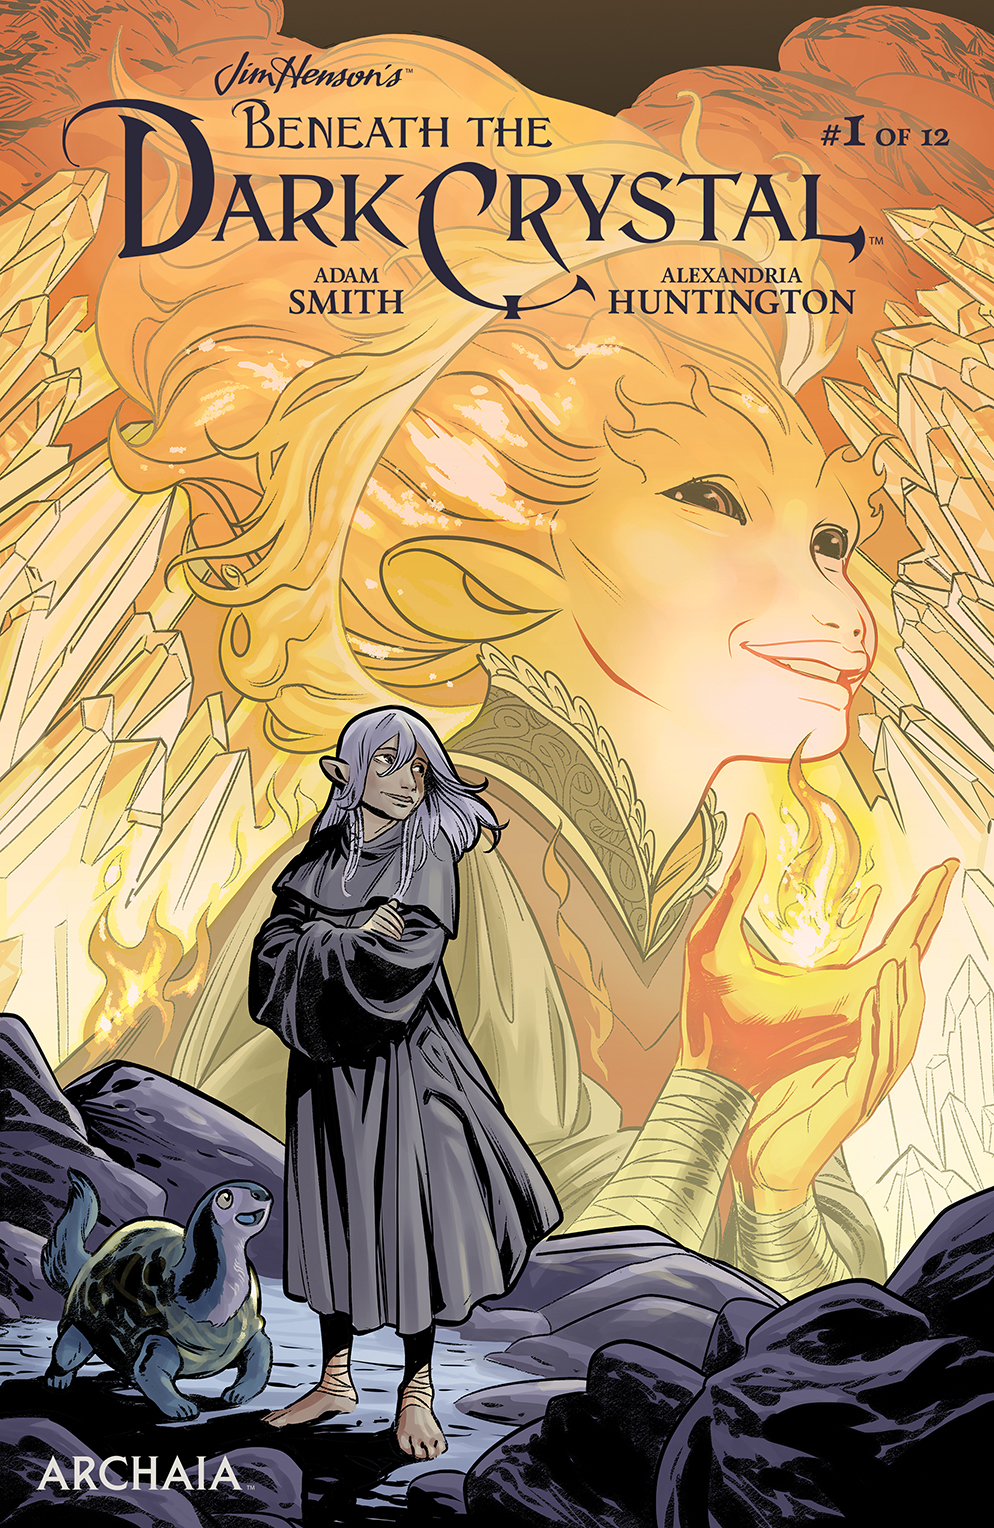 JIM HENSON BENEATH DARK CRYSTAL #1 (OF 12) MAIN CVR DEWEY